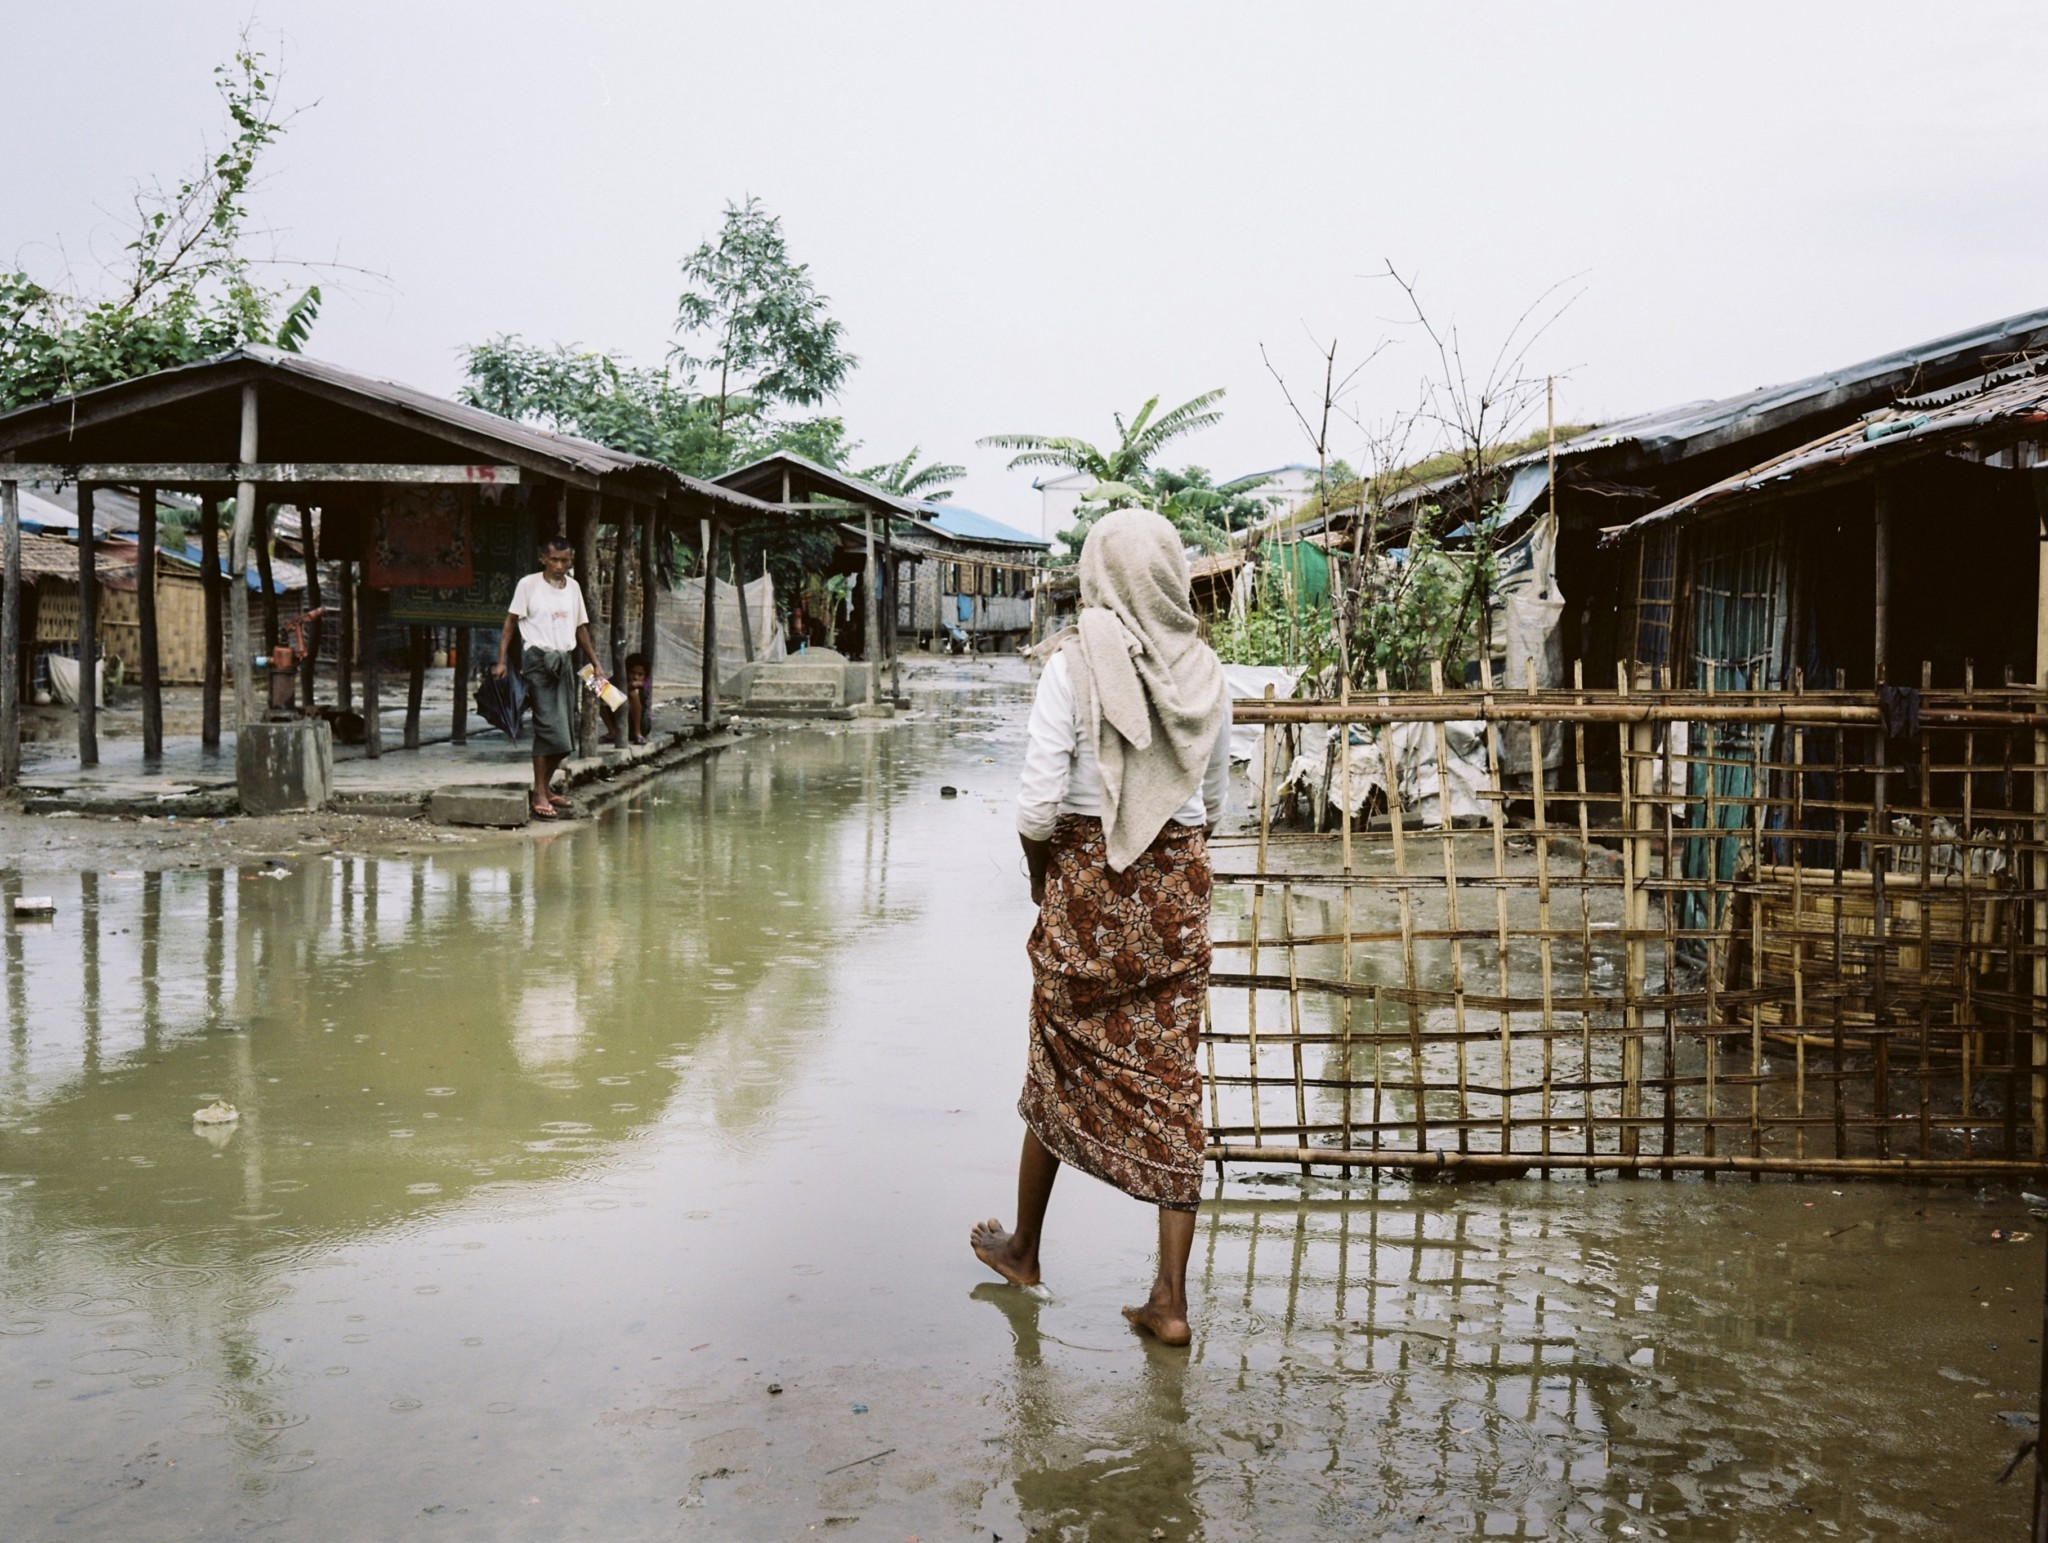 In 2012, the mosque in the capital Sittwe was closed, and militant Buddhists burned down Rohingya homes and villages. Many Rohingya were subsequently interned in IDP camps.